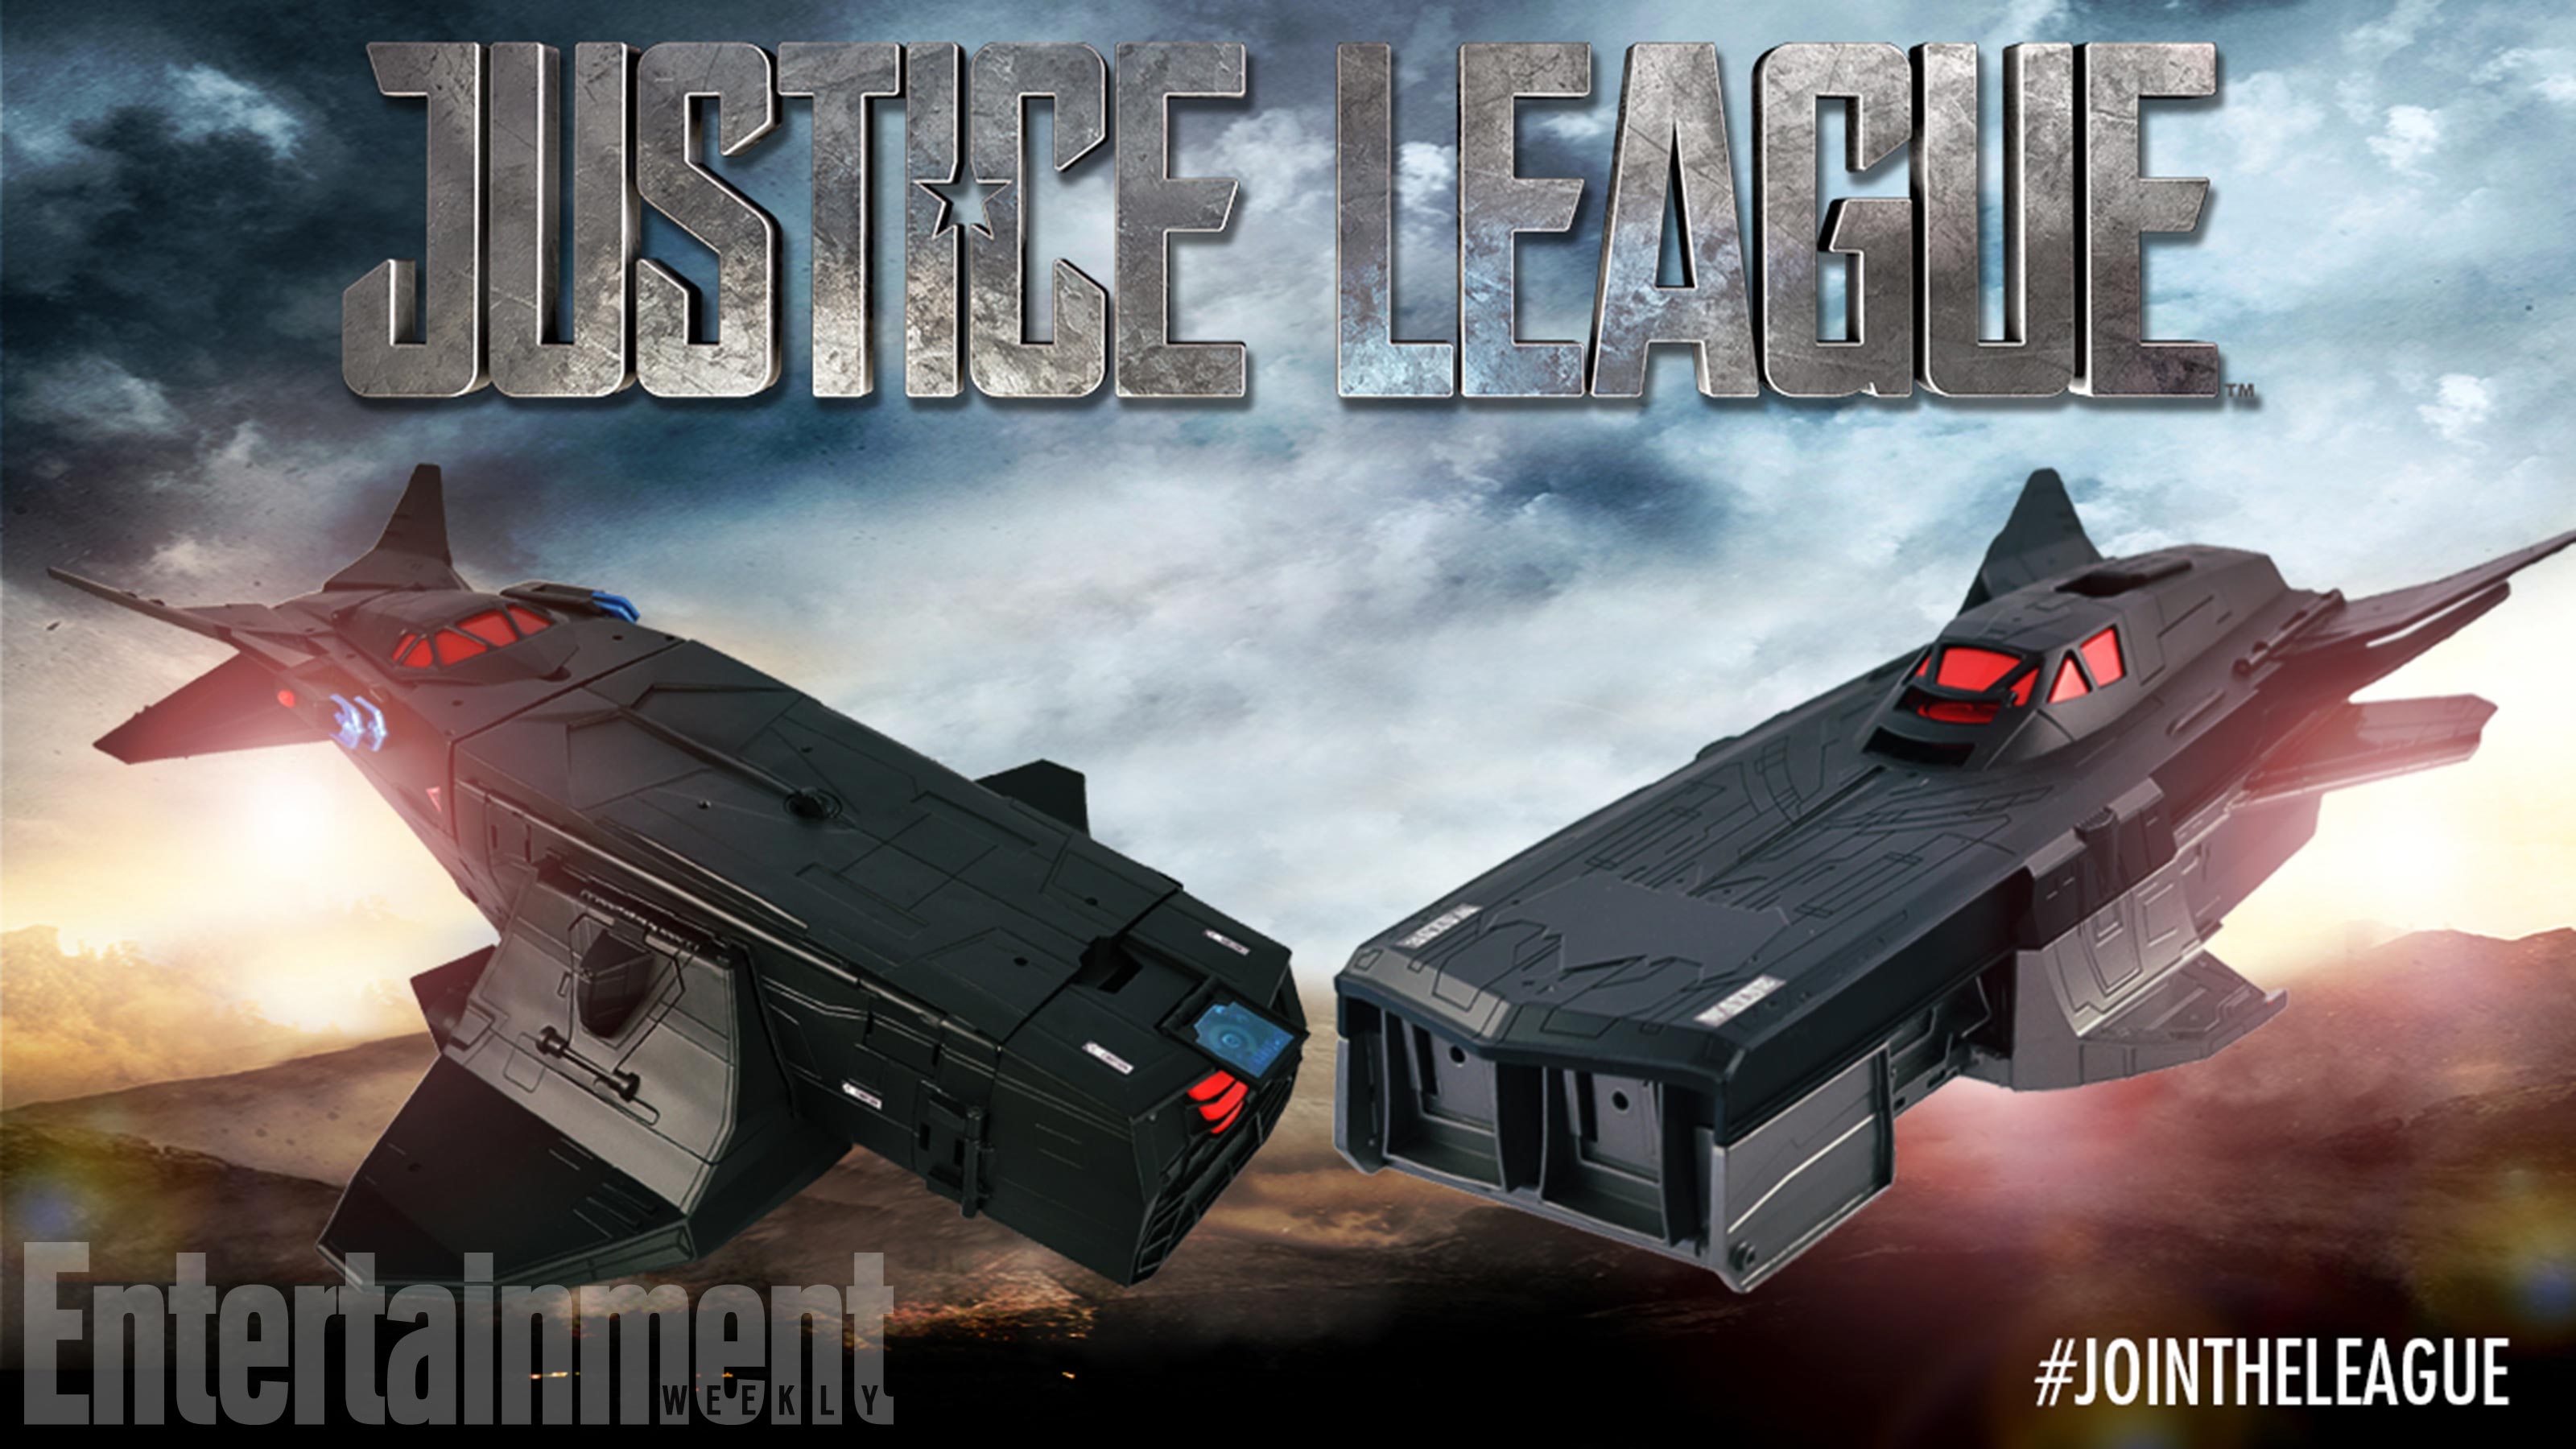 New Images Of Justice League Action Figures Offer Up-Close Looks At Steppenwolf And Parademons